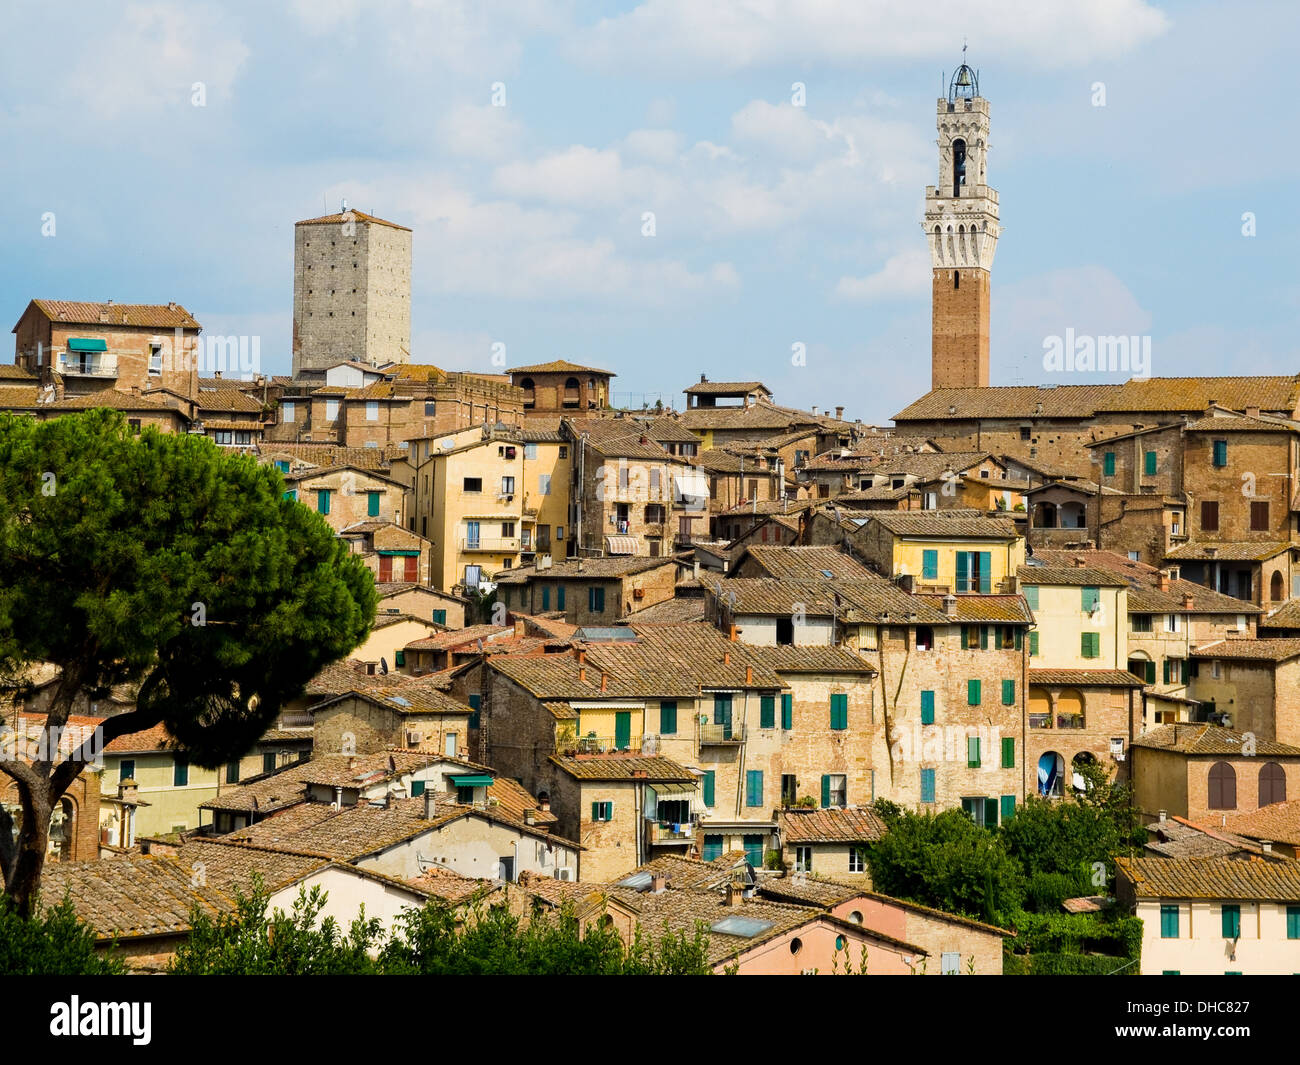 Siena View With Antique Houses And Mangia Tower. Siena, Italy